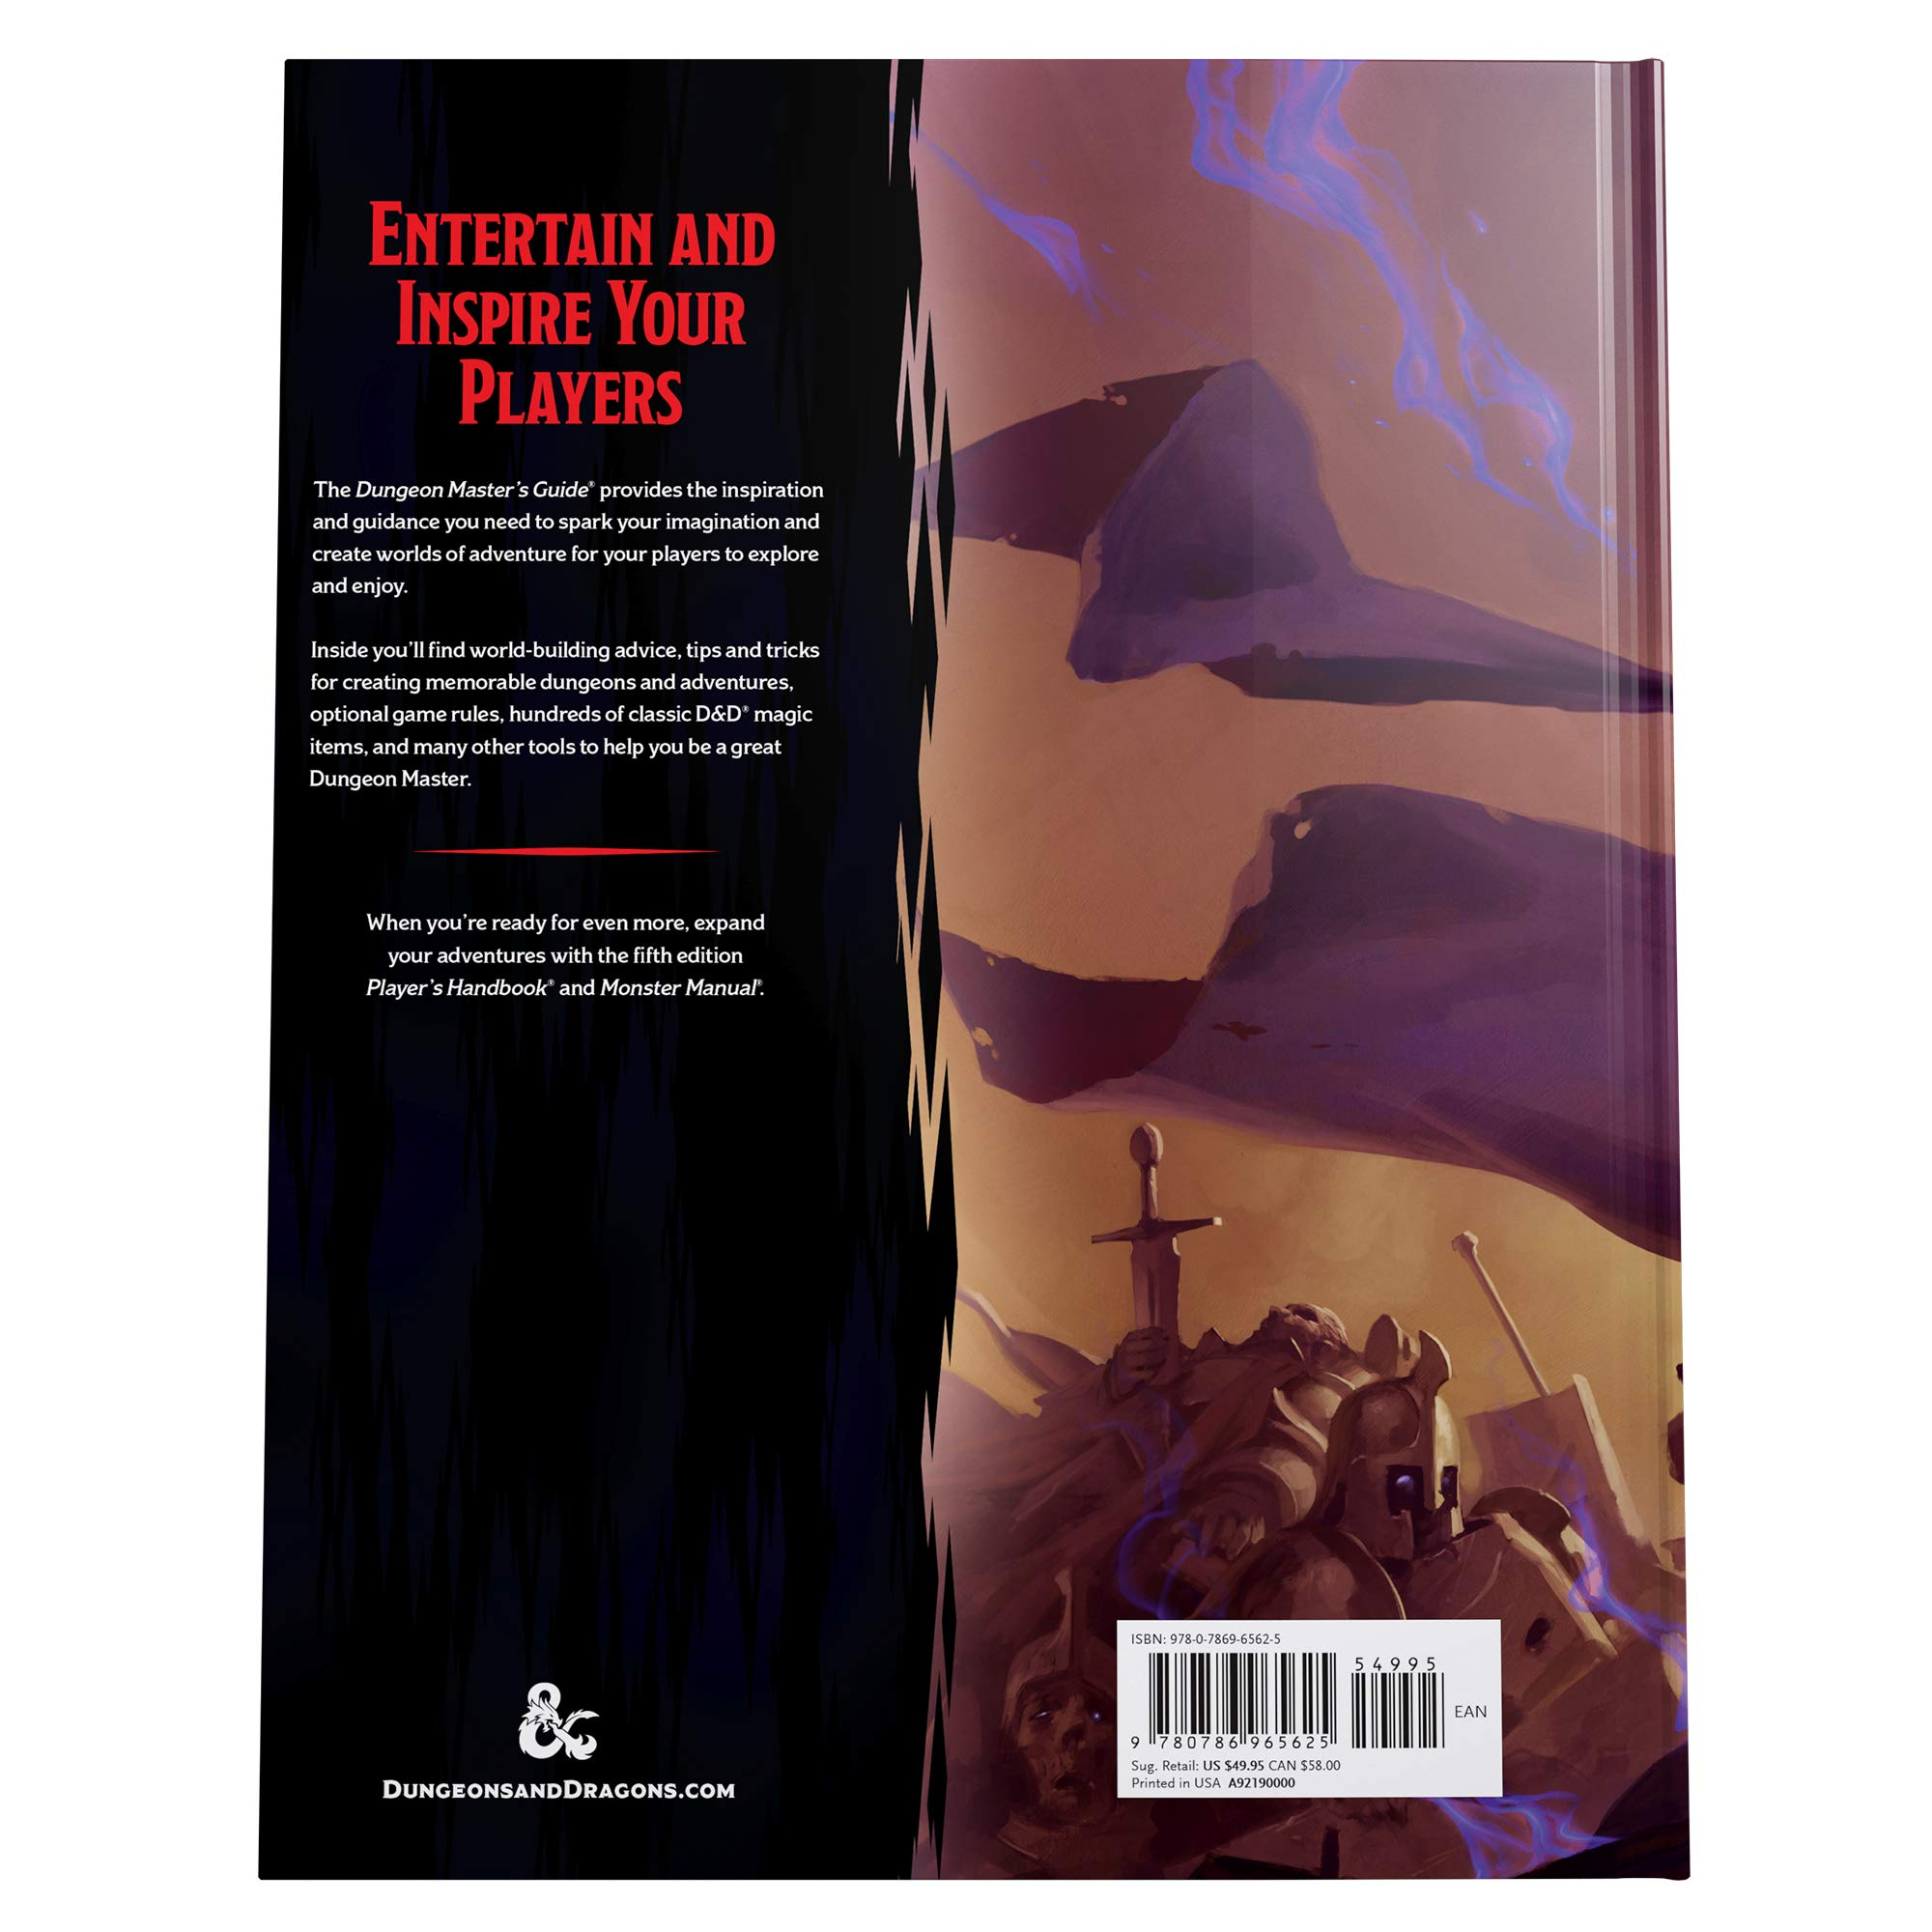 Dungeon Master's Guide (Dungeons & Dragons Core Rulebooks): Amazon